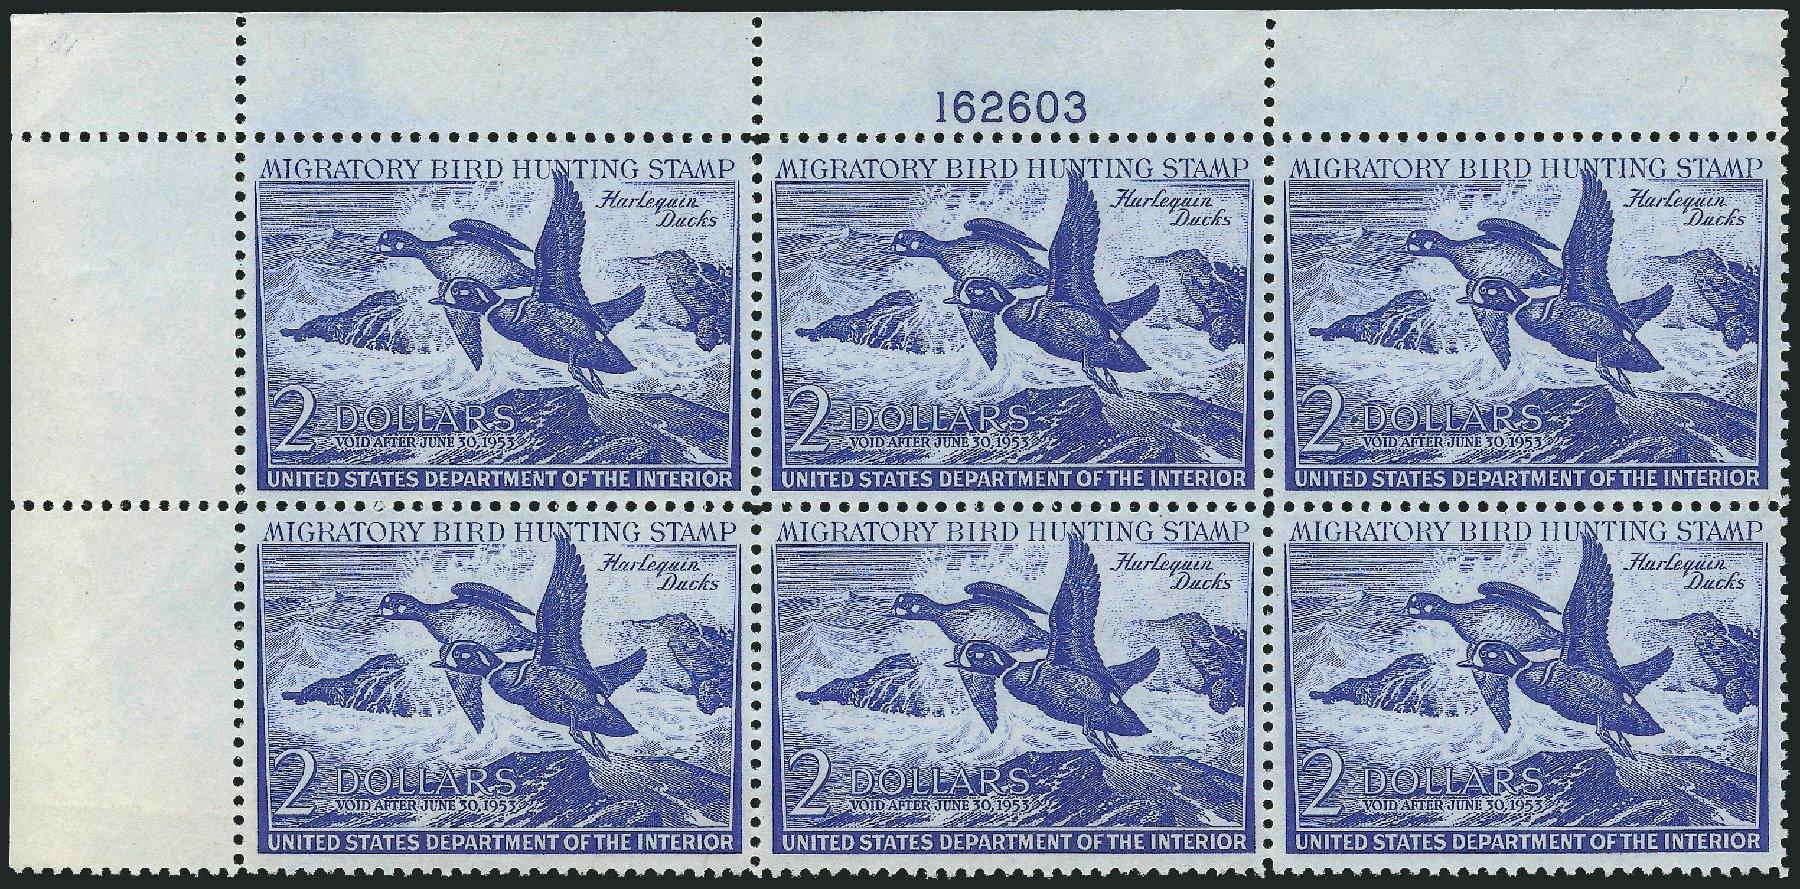 US Stamp Price Scott Catalog RW19 - 1952 US$2.00 Federal Duck Hunting. Robert Siegel Auction Galleries, Oct 2014, Sale 1082, Lot 547